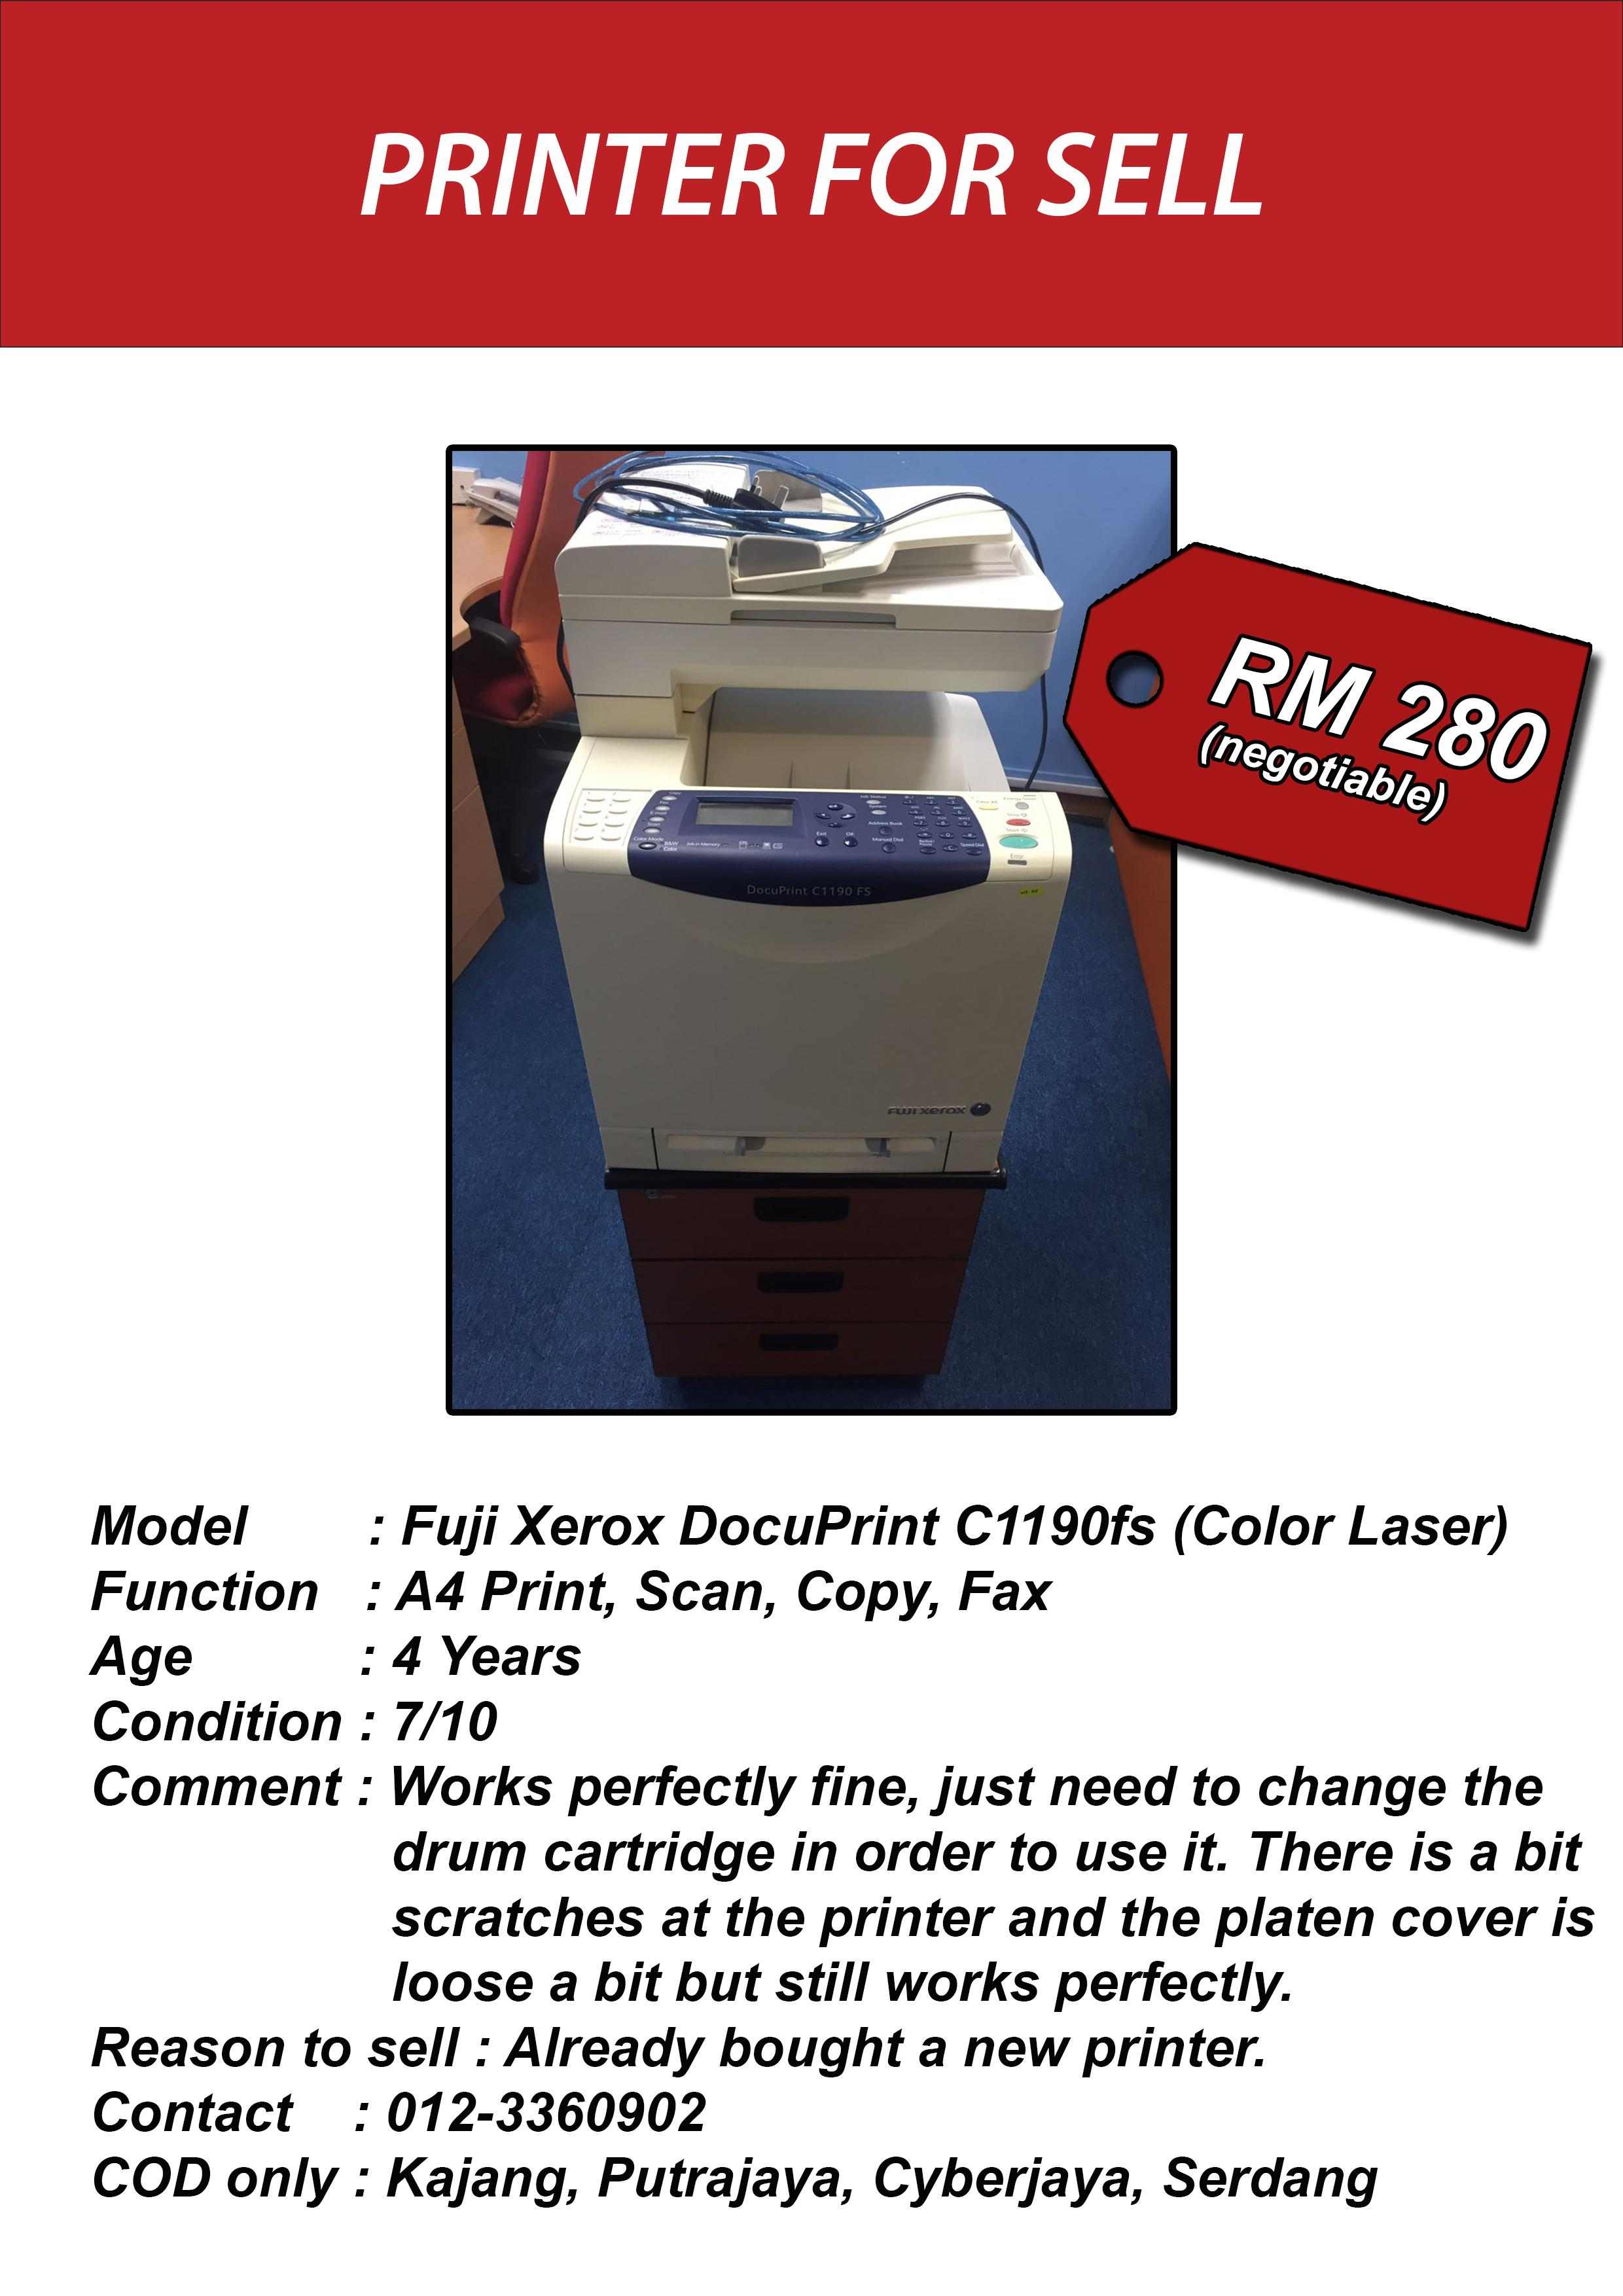 Fuji Xerox DocuPrint C1190fs Color Laser Printer